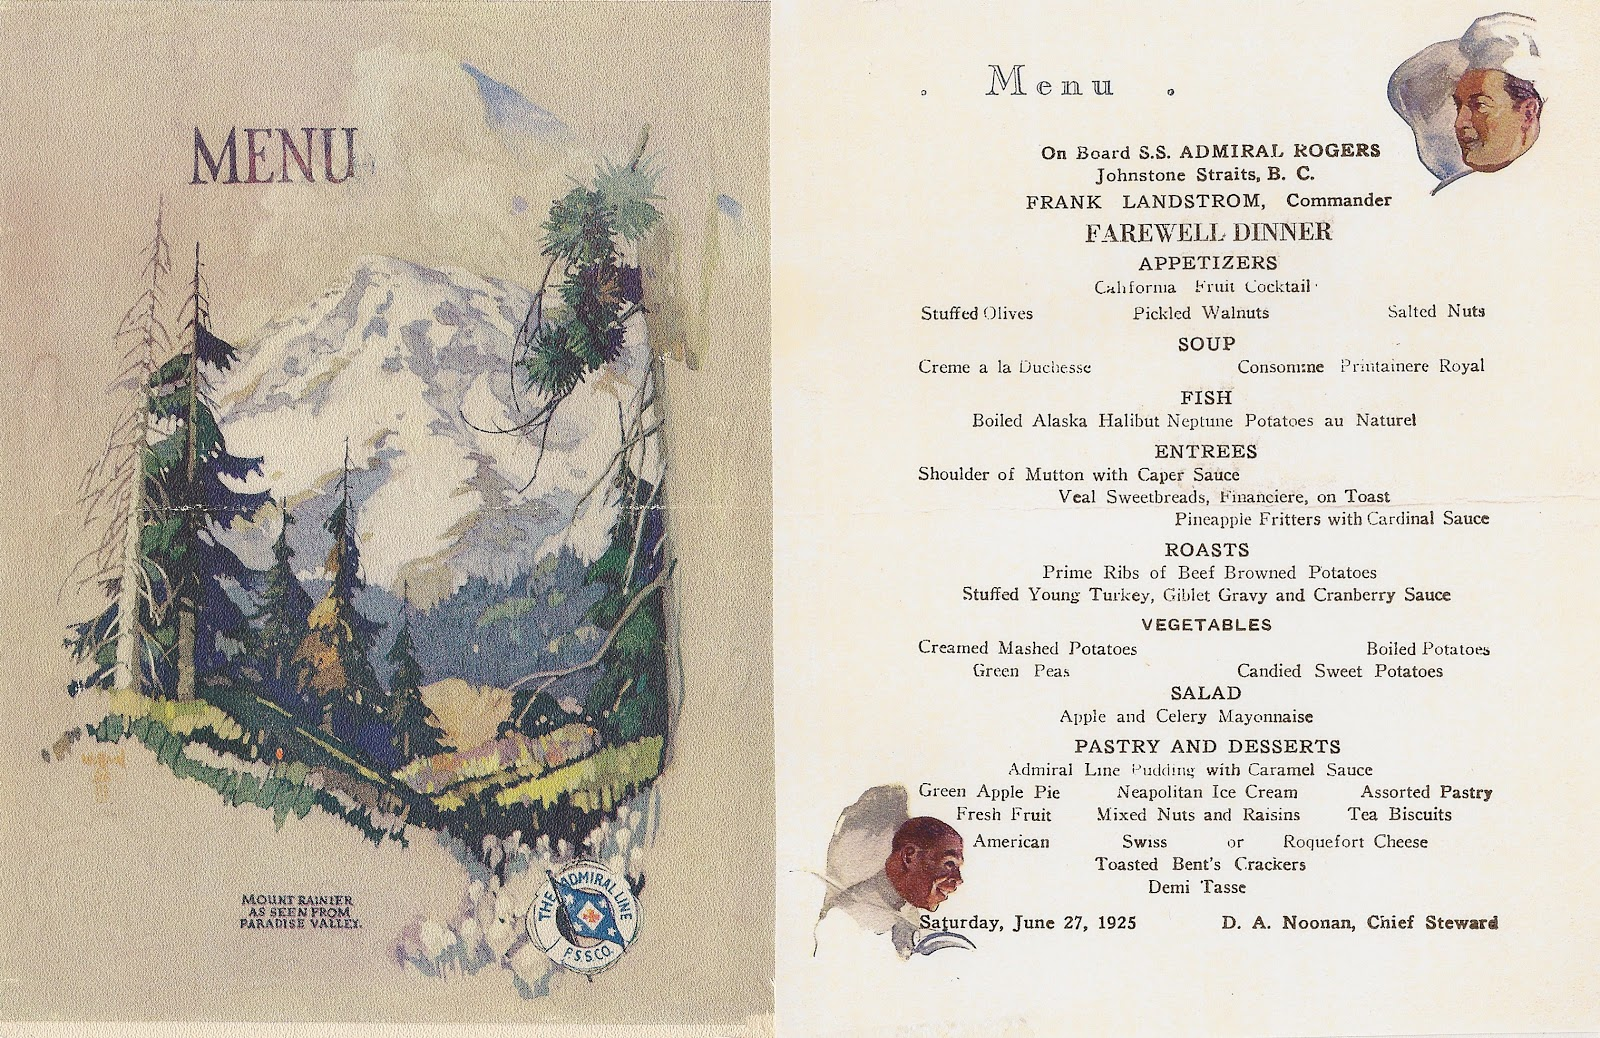 Menu from the ADMIRAL ROGERS with Captain Landstrom 1925.